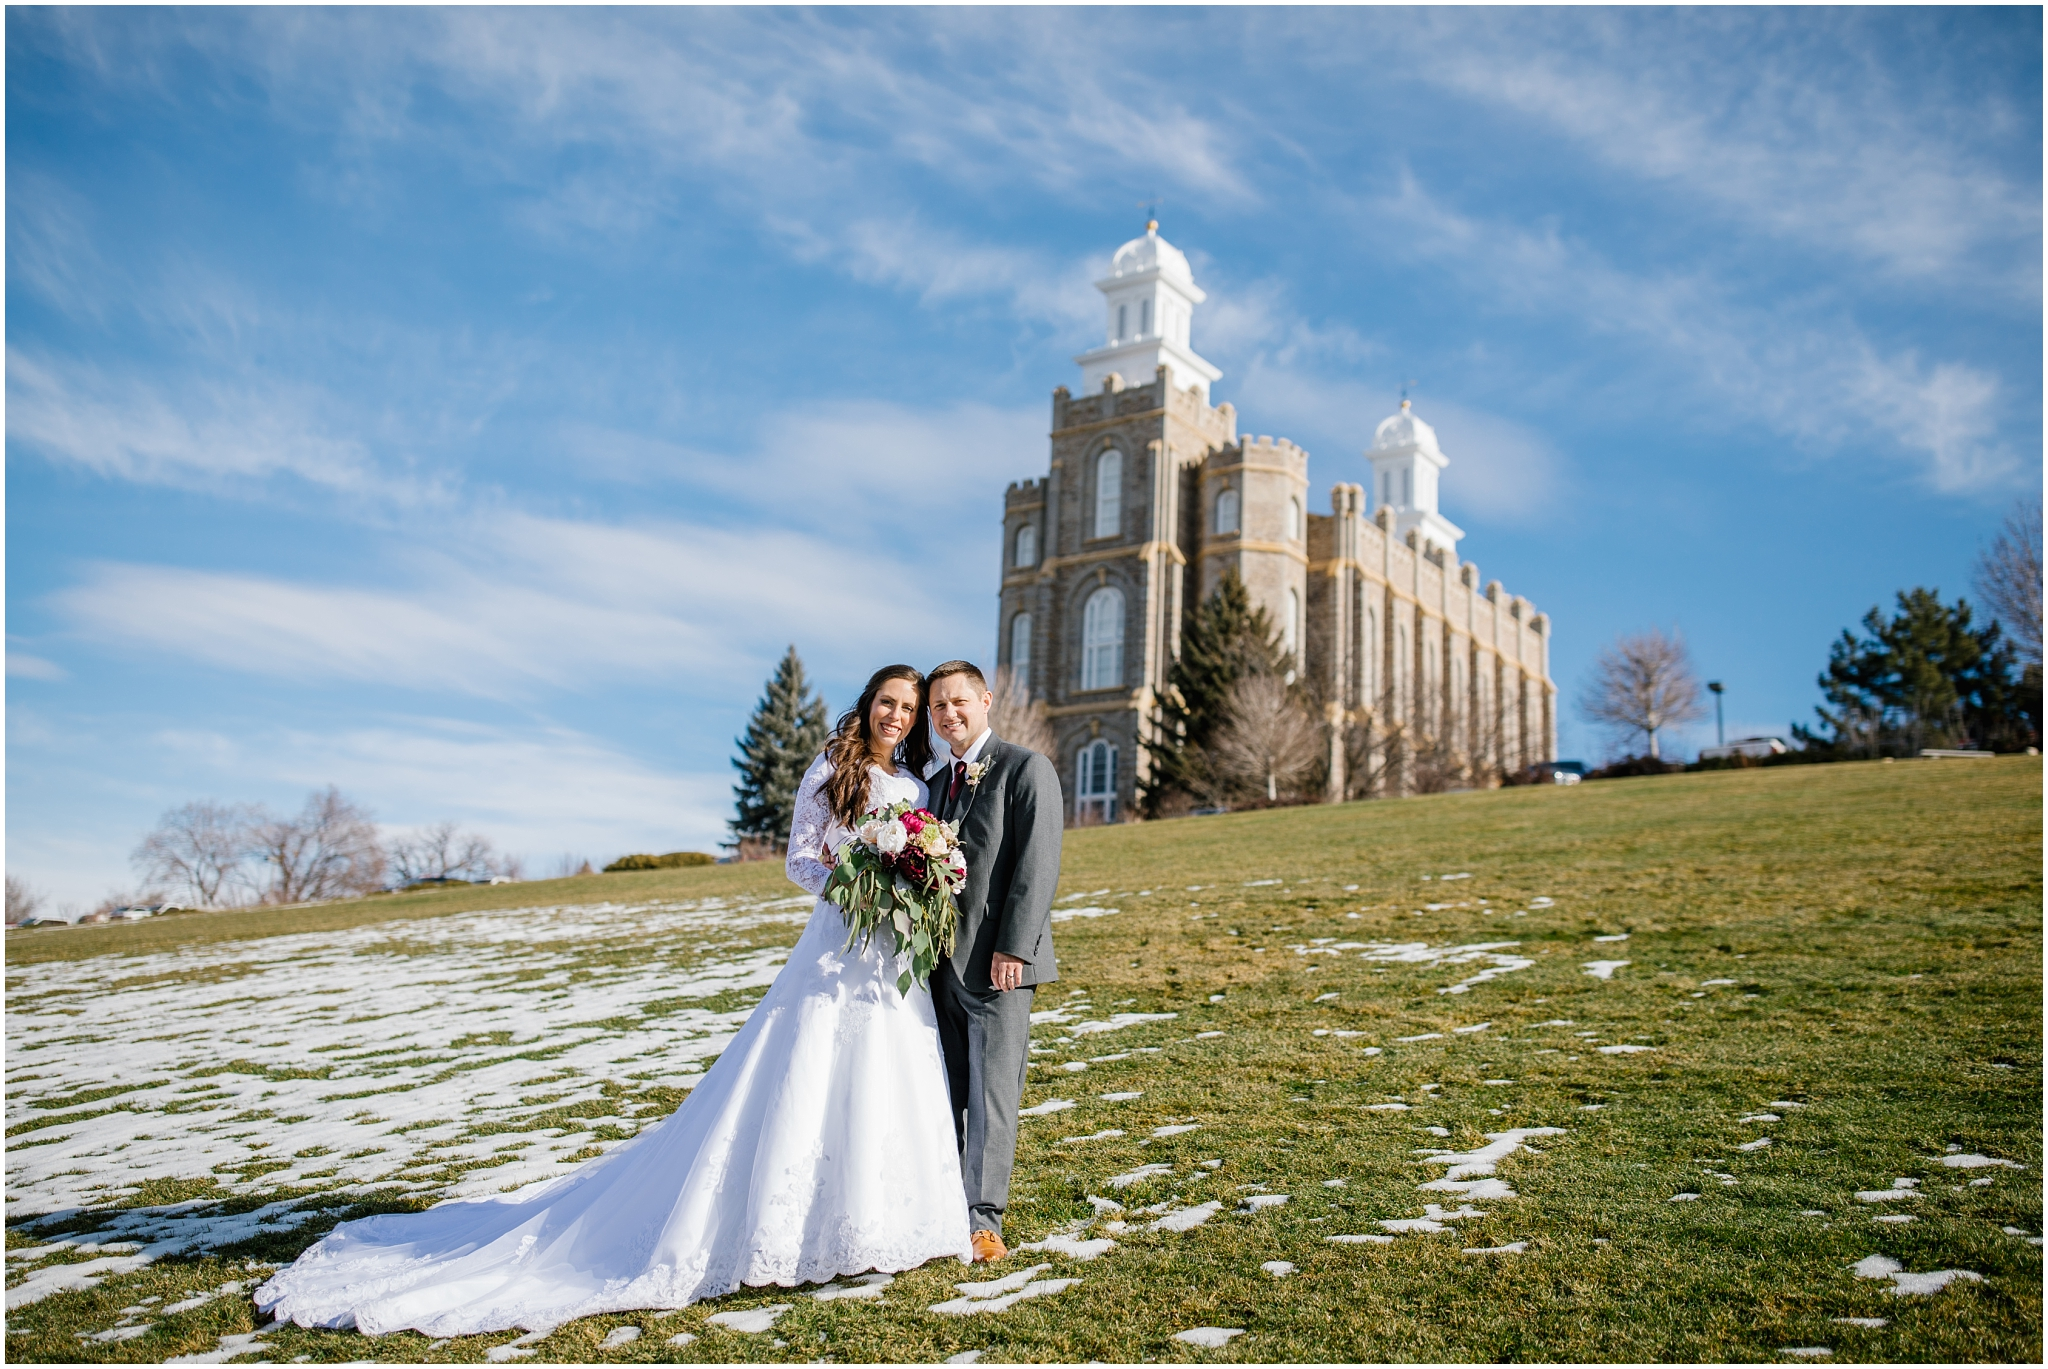 SS-Wedding-124_Lizzie-B-Imagery-Idaho-Utah-Wedding-Photographer-Salt-Lake-City-Park-City-Logan-Utah-Temple.jpg